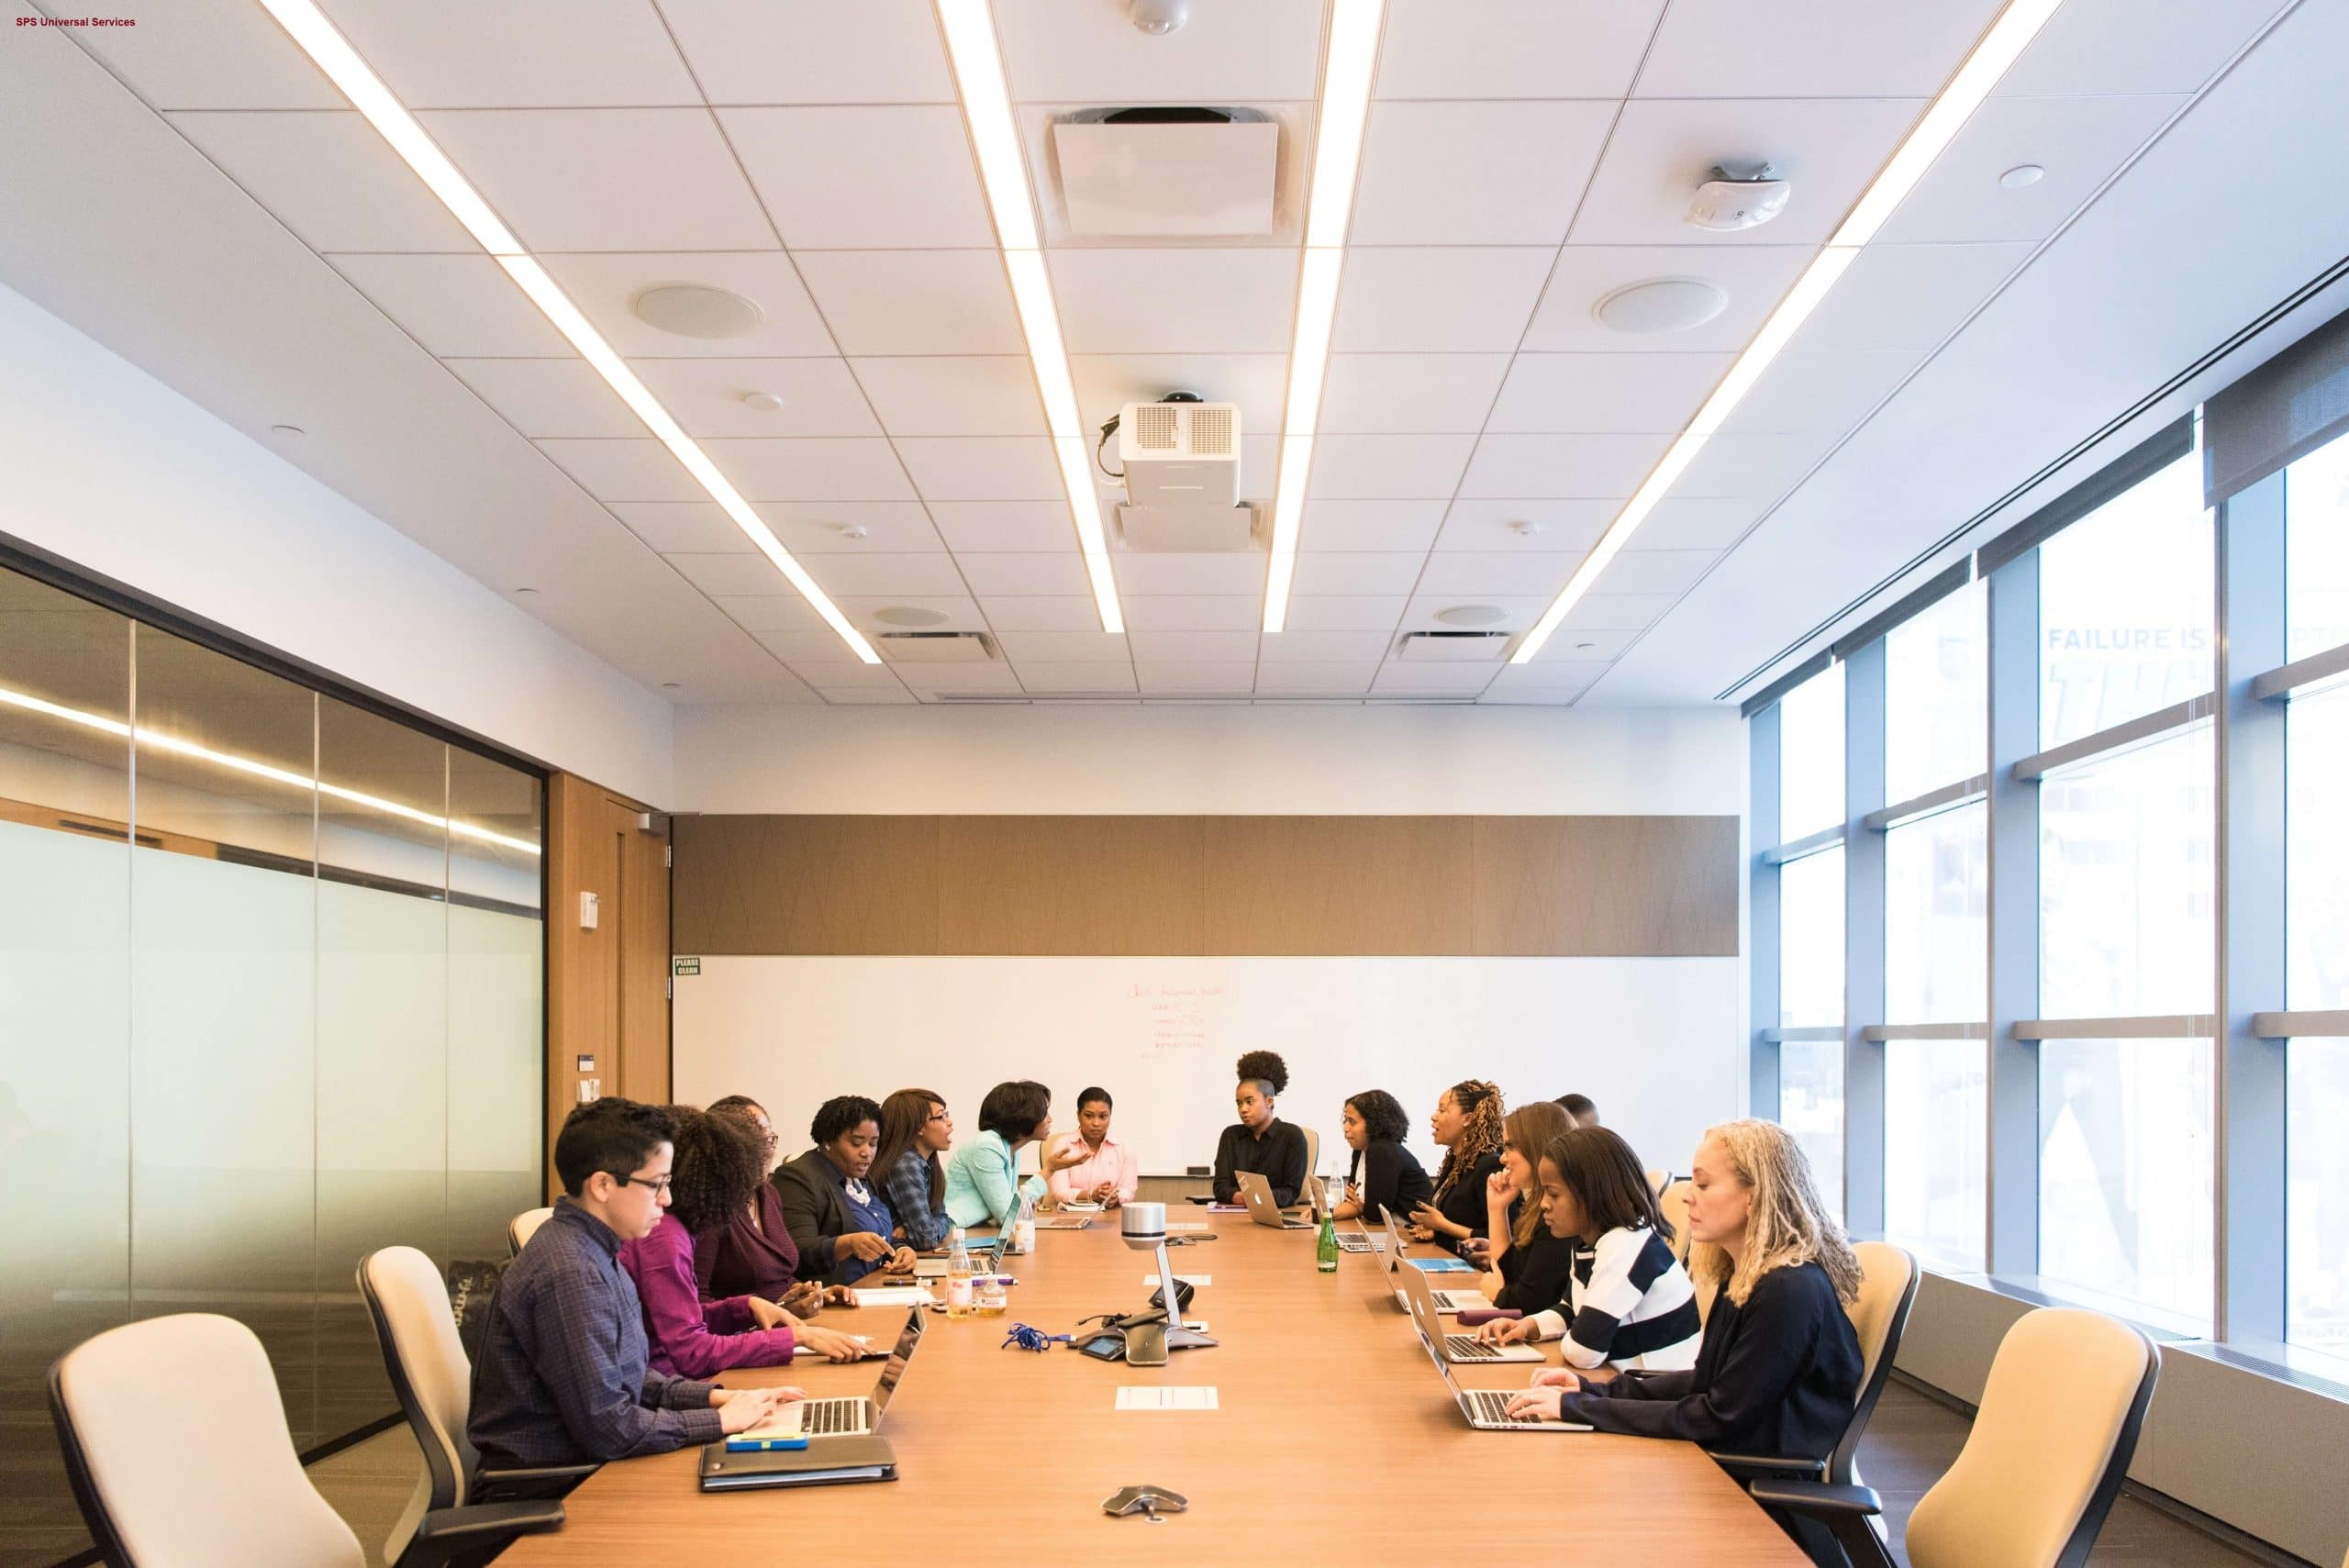 When Should You Approach The Board With an IT Proposal